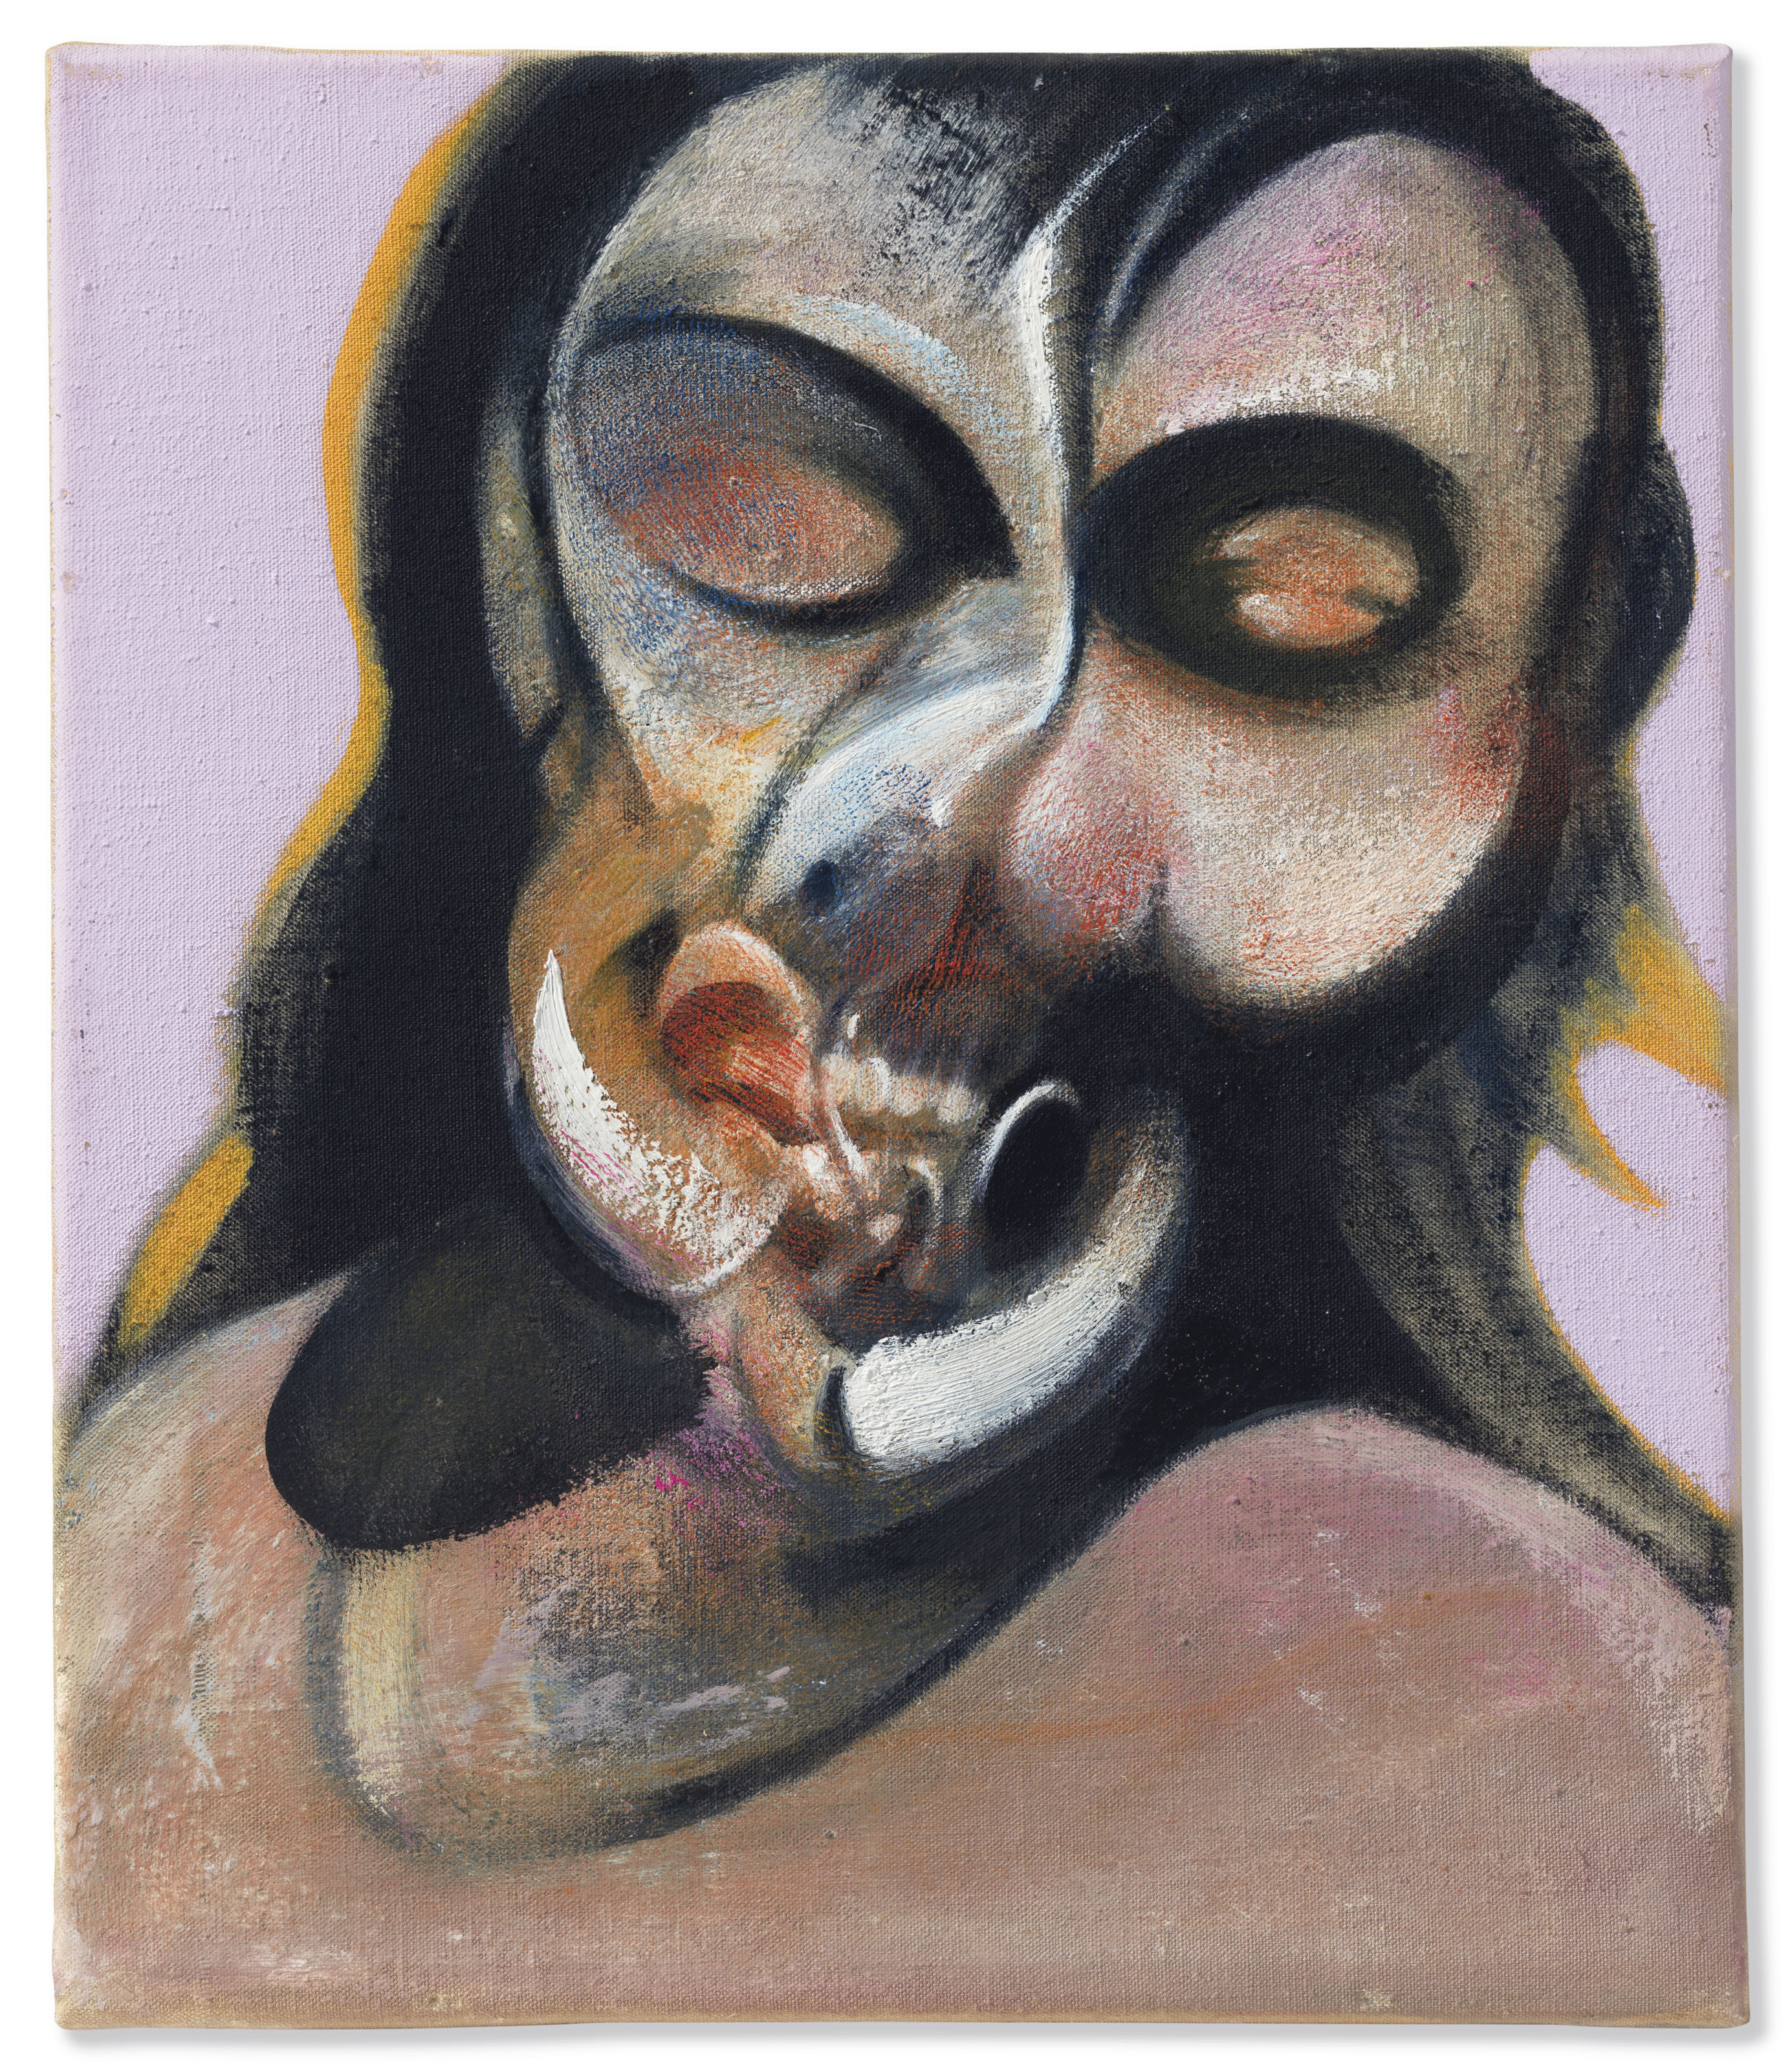 Francis Bacon (1909-1992), Study of Henrietta Moraes Laughing, painted in 1969. Oil on canvas.  © The Estate of Francis Bacon. All rights reserved / DACS, London / ARS, NY 2018 via Christie's